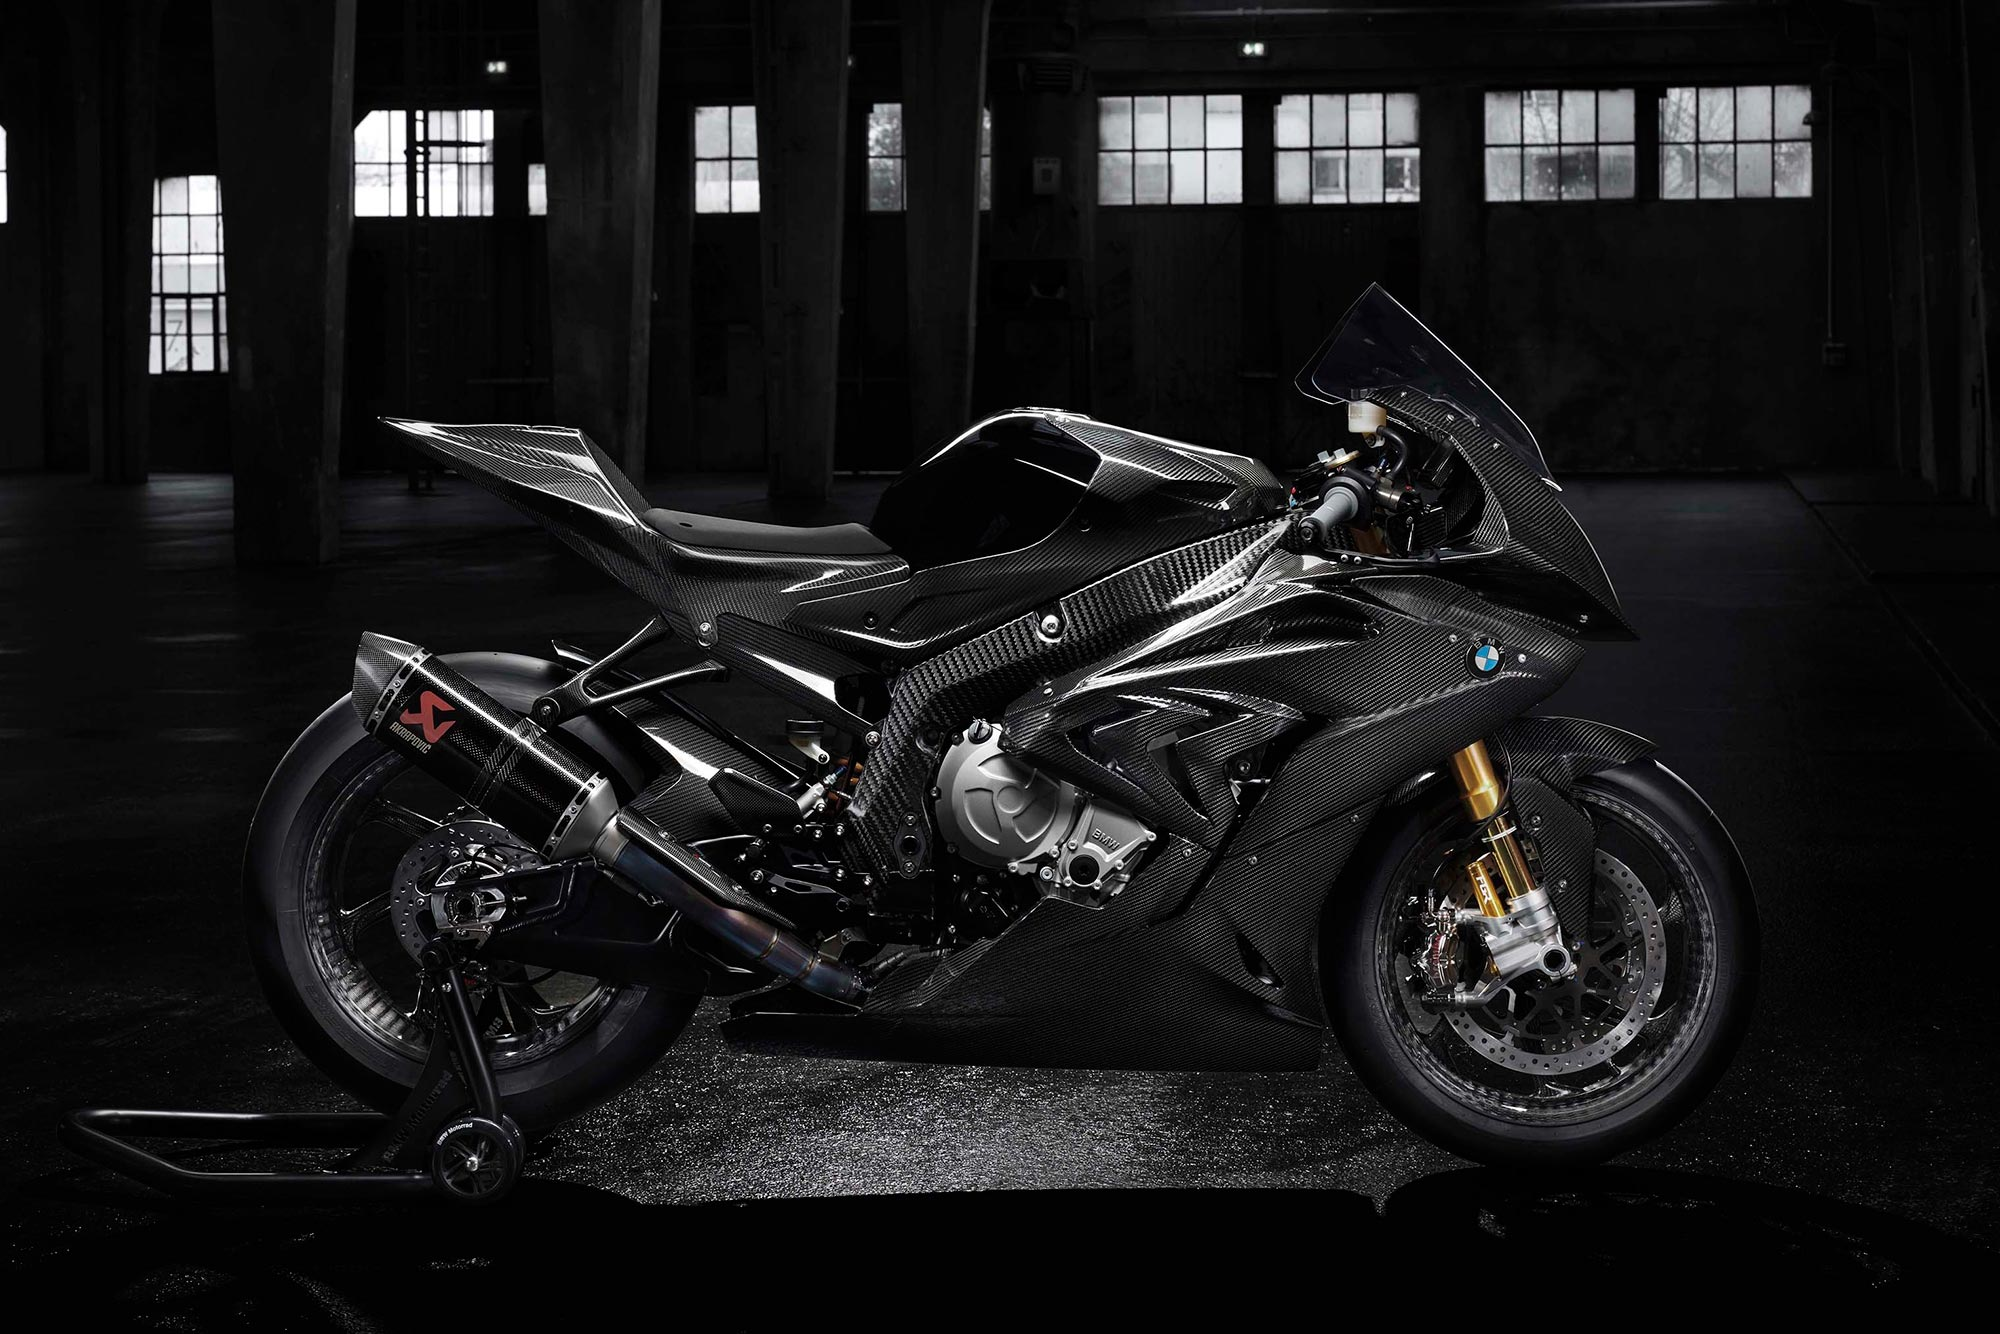 2018 bmw rr. perfect 2018 after this yearu0027s april fools hijinks we have a whole new respect for the  cunning that resides at bmw motorrad and germans seem to be honing  intended 2018 bmw rr e